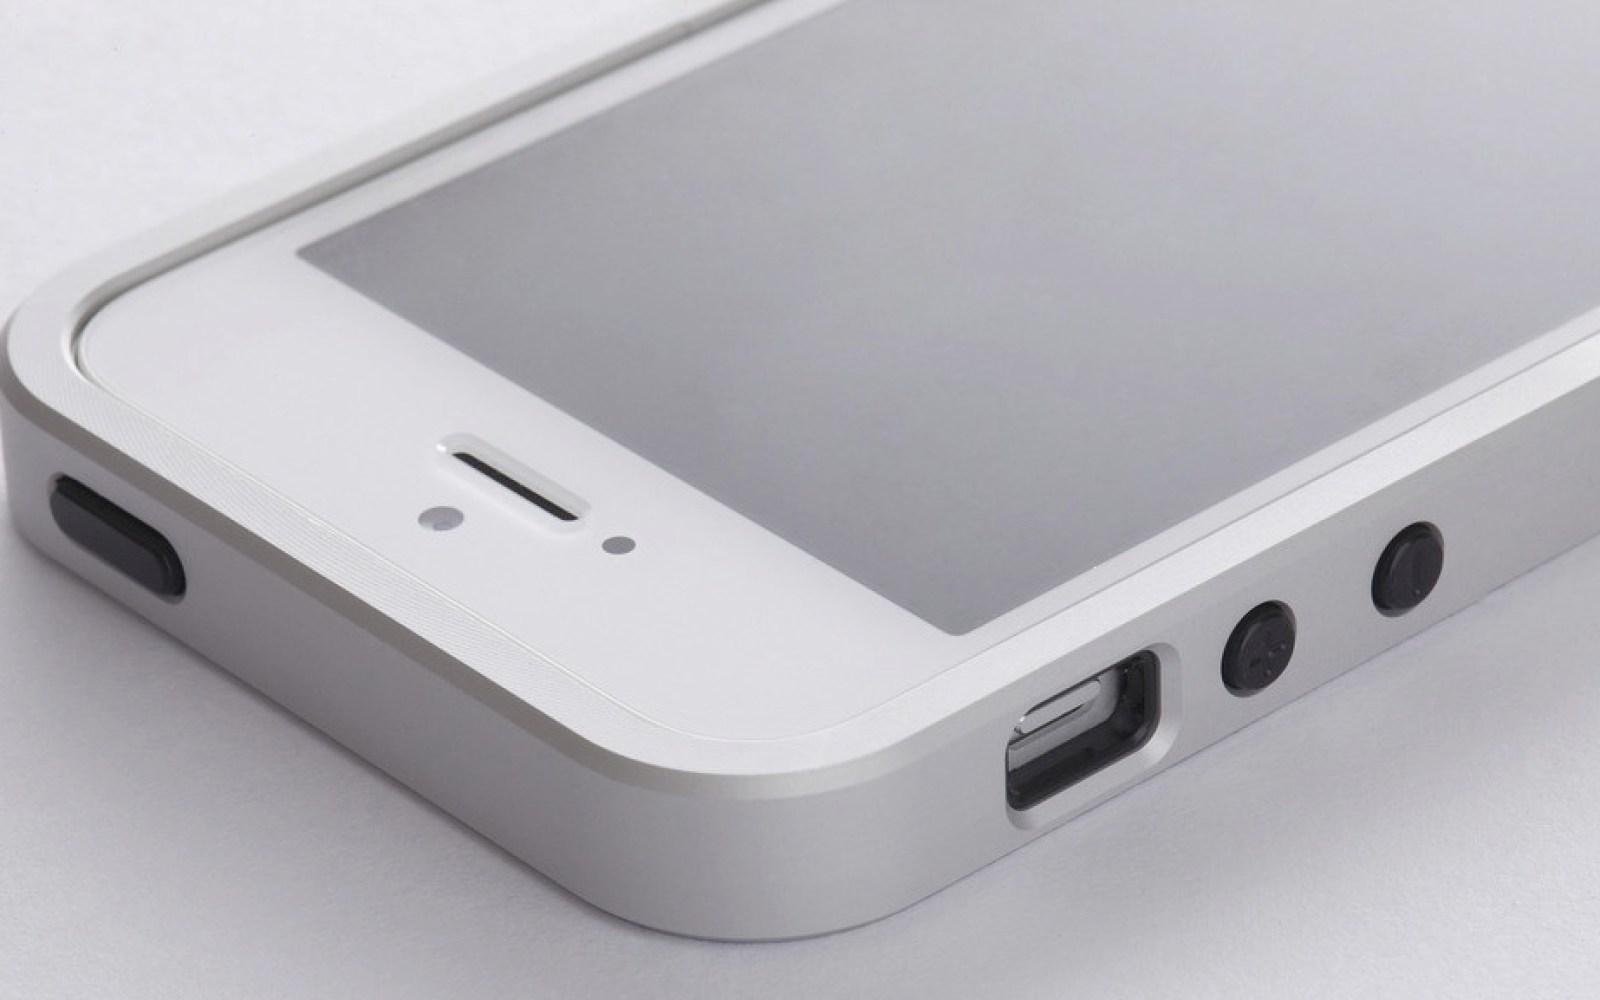 Freeform3 creates a Bumper worthy of the iPhone 5 [Review]